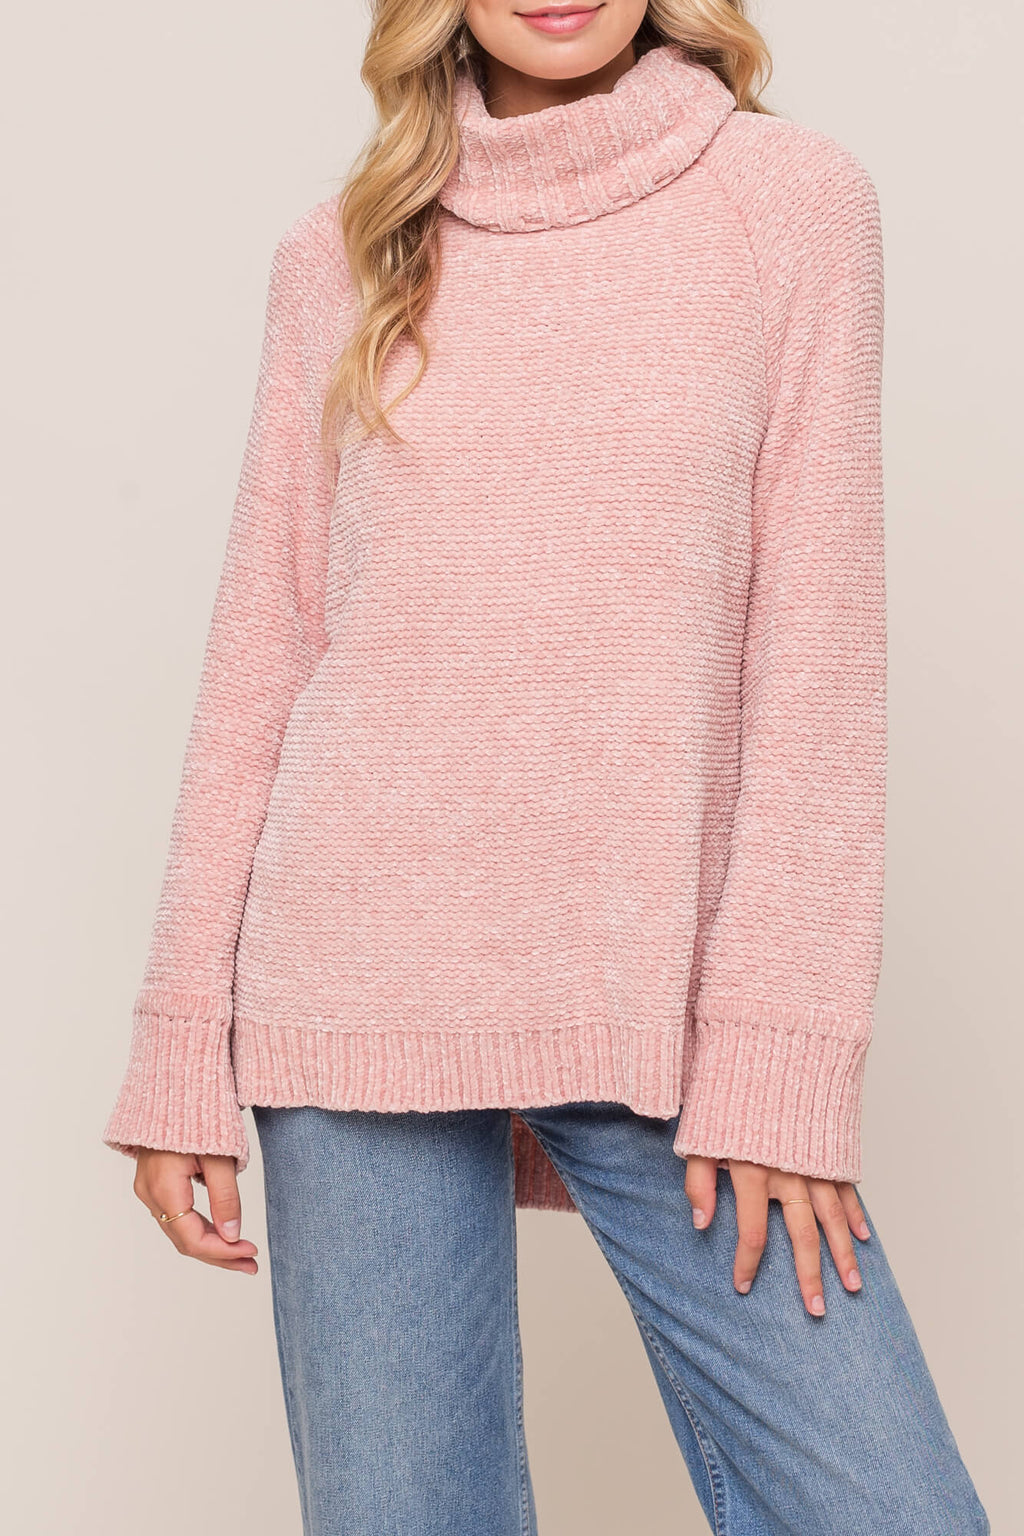 LUSH Soft Chenille Turtleneck Sweater